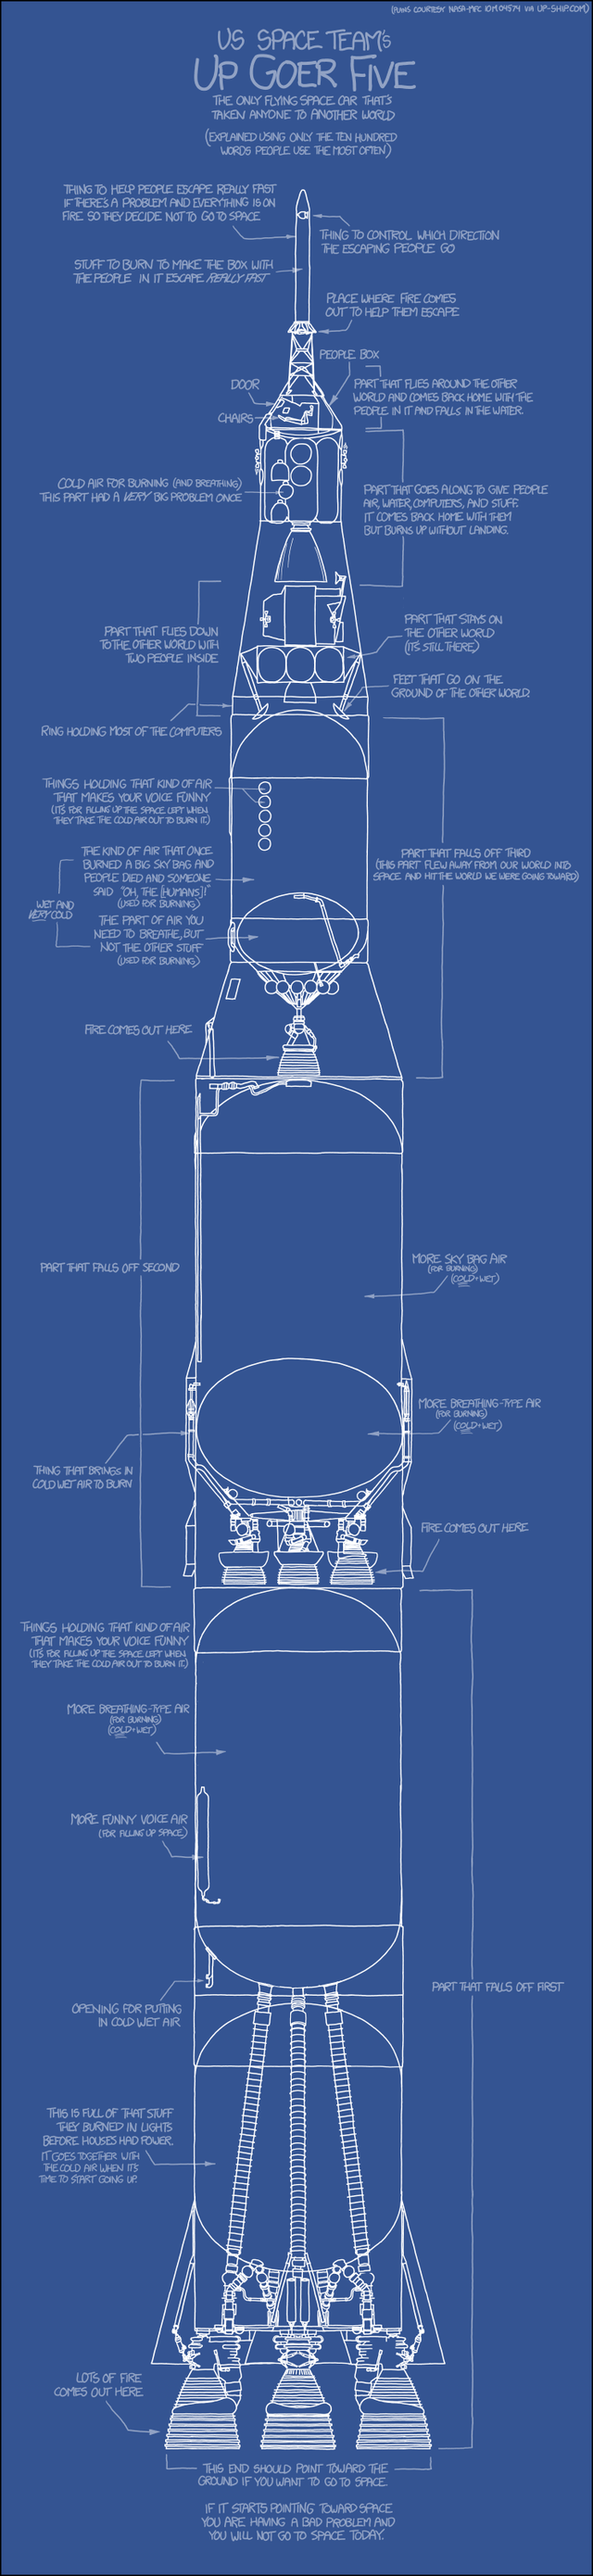 Describing Saturn 5 in Simple English Is Difficult But Hilarious